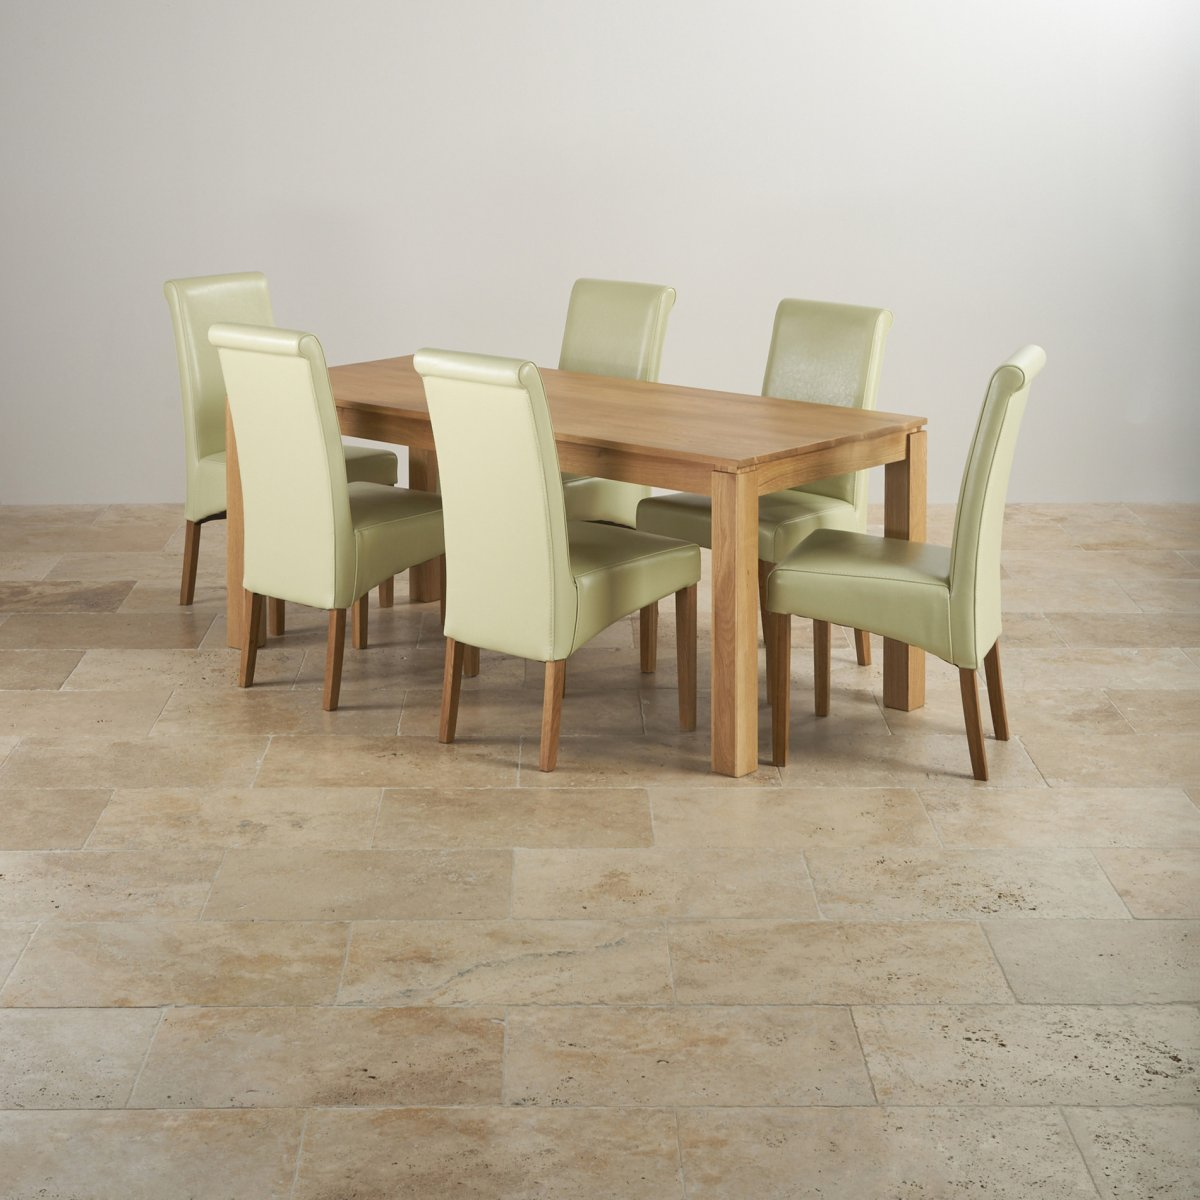 6ft Table With 6 Chairs: 6ft Table + 6 Cream Leather Chairs